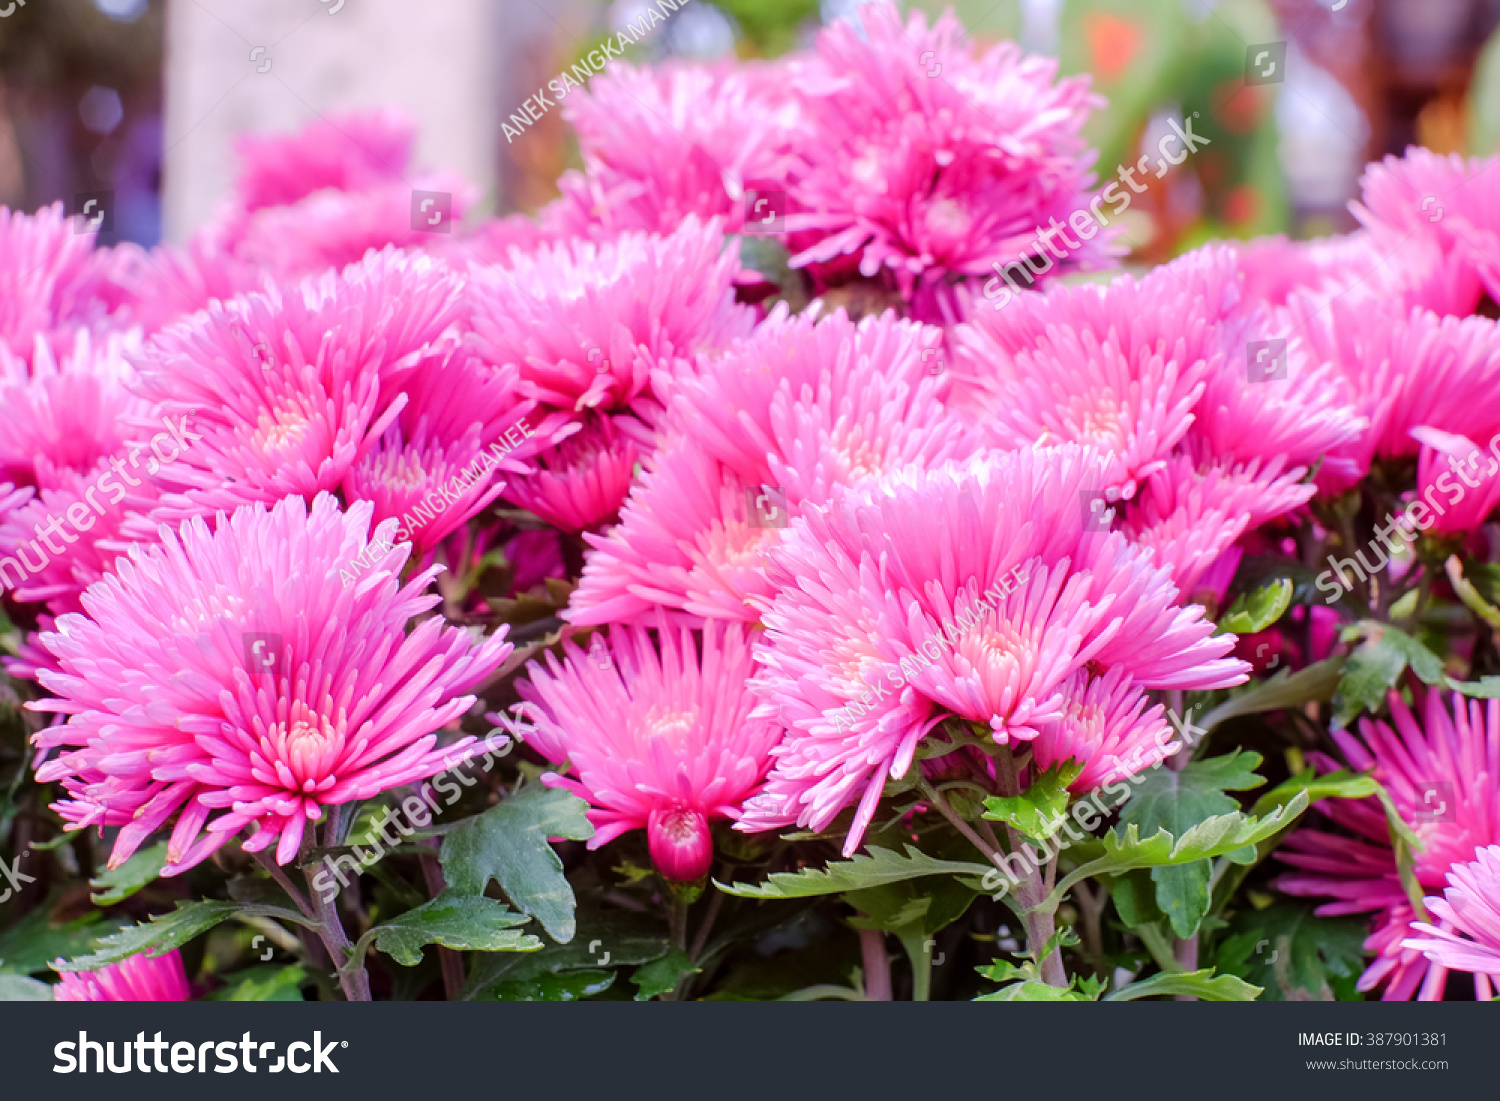 Selective Focus Of Pink Mum Flowers And Blurred Background Ez Canvas